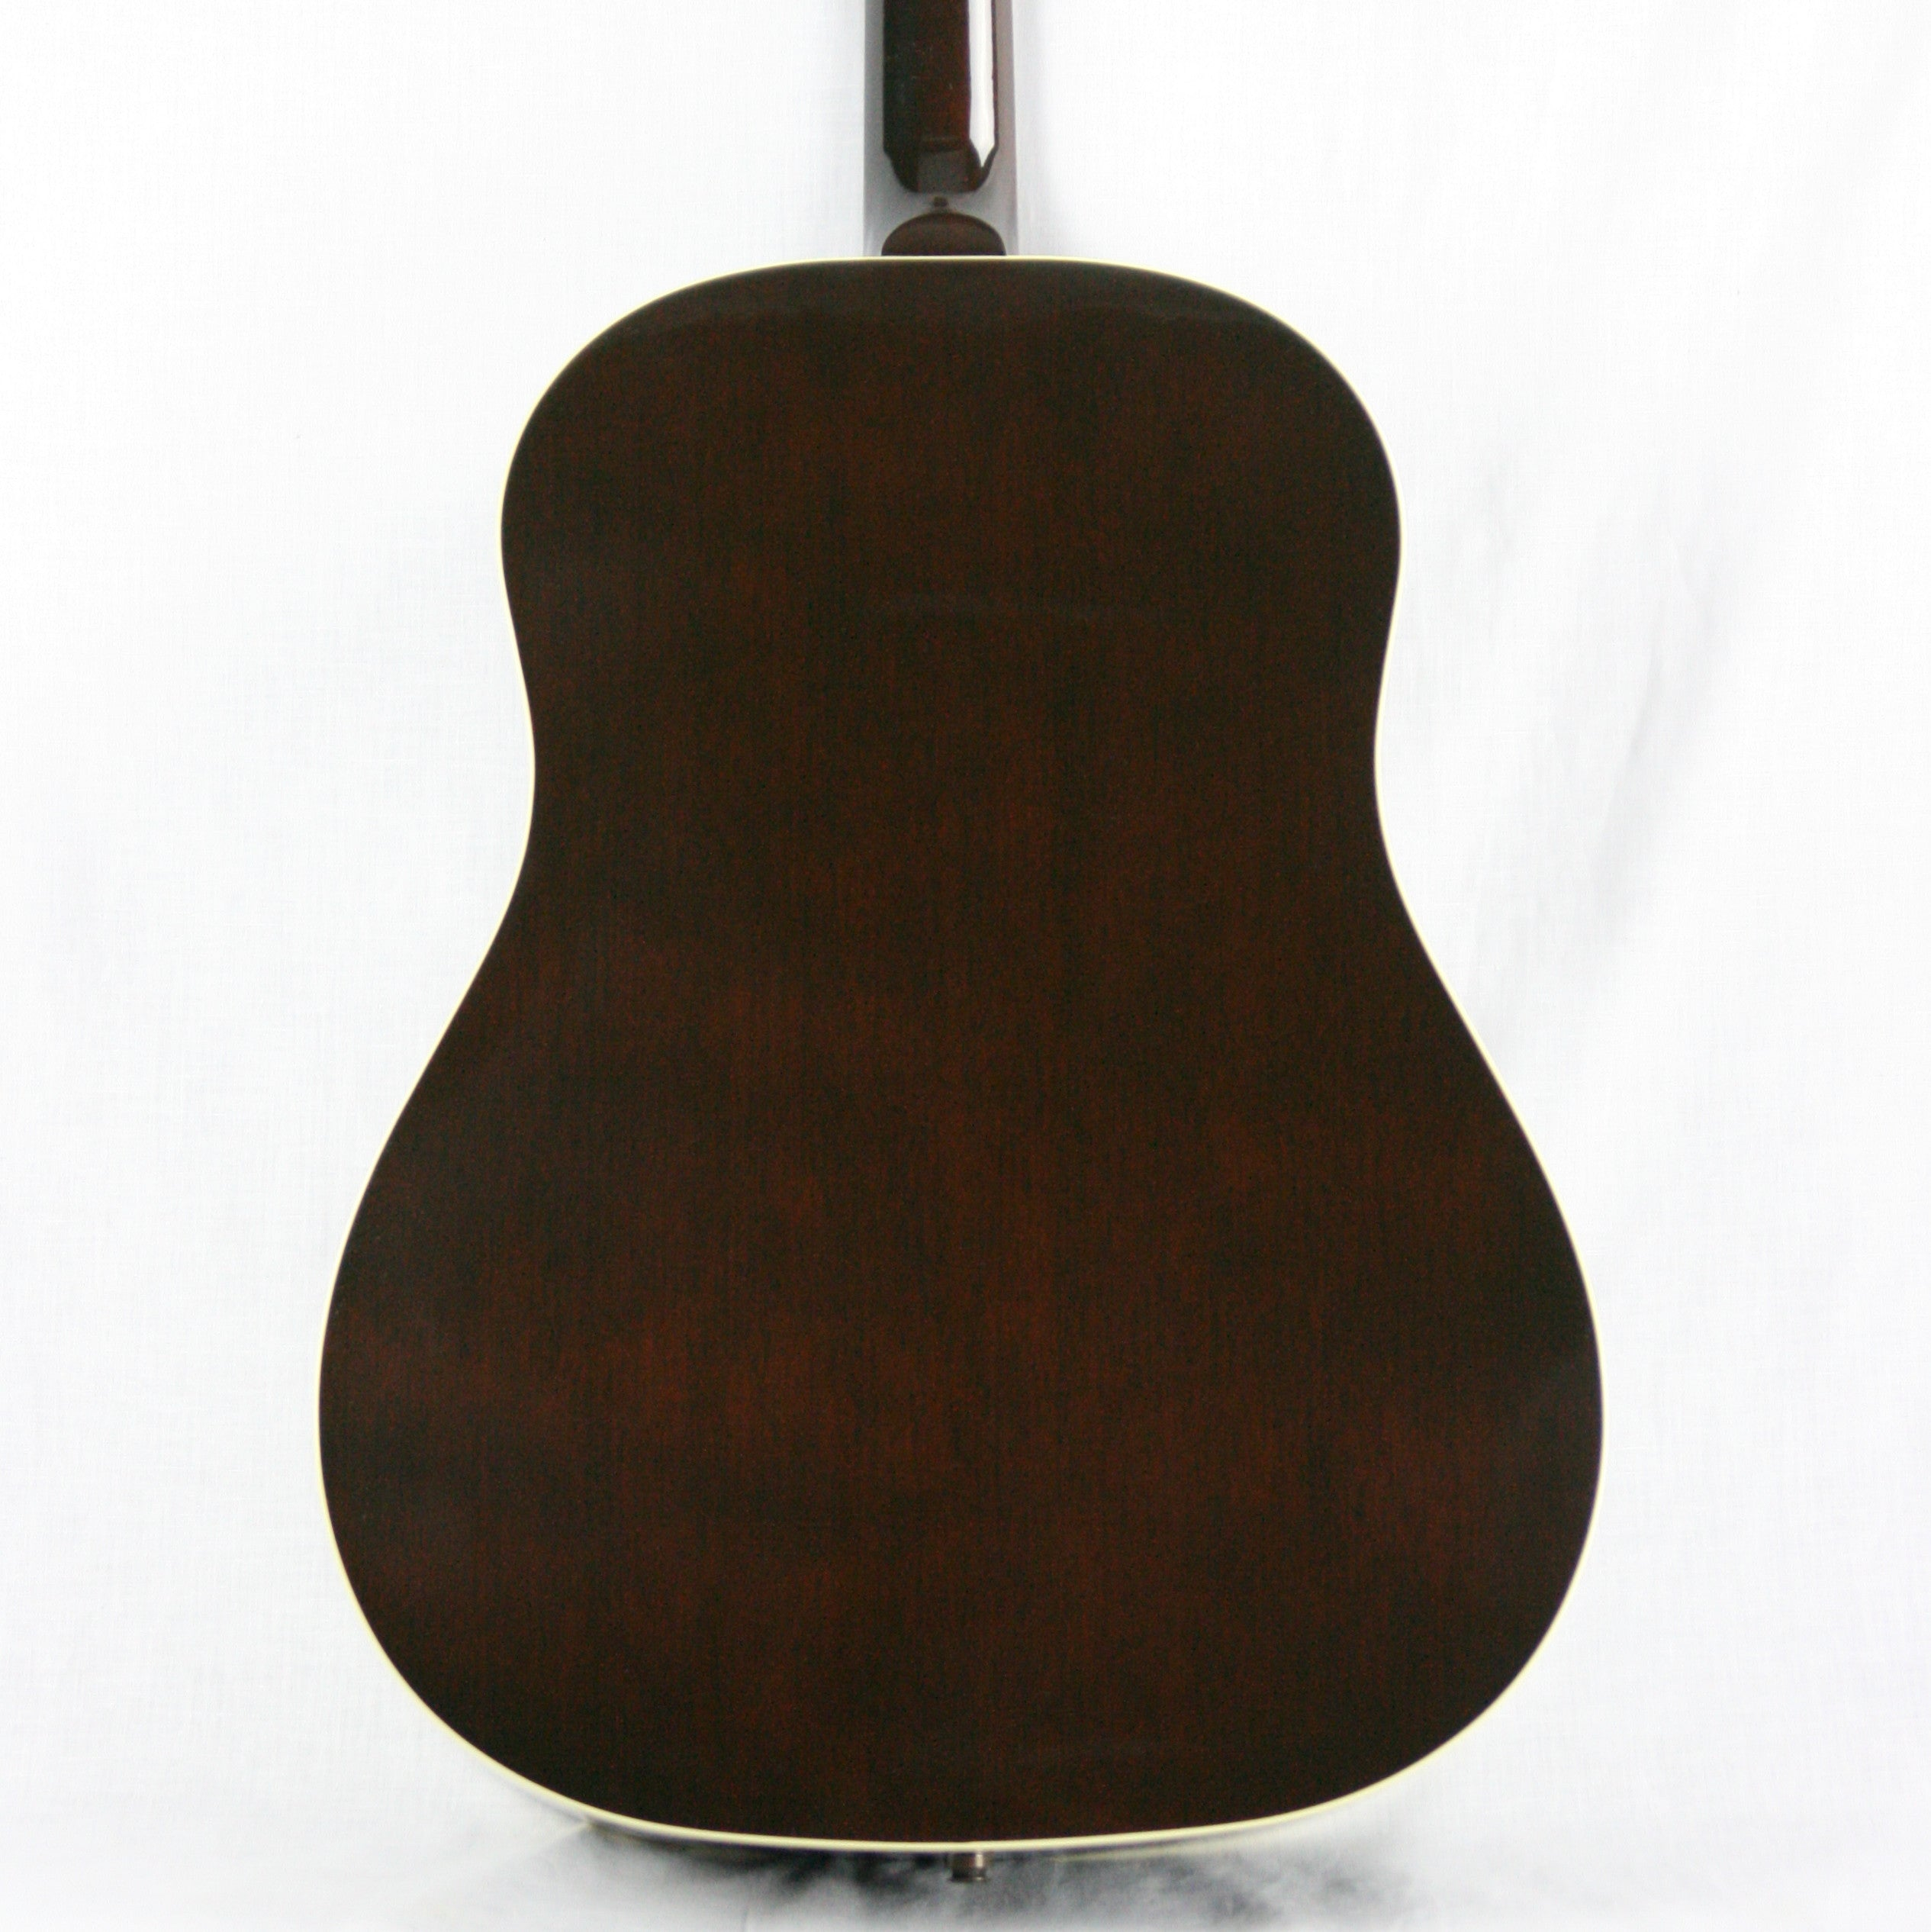 1960's Gibson Custom Shop Limited Edition J-45 BROWN Top! White Pickguard